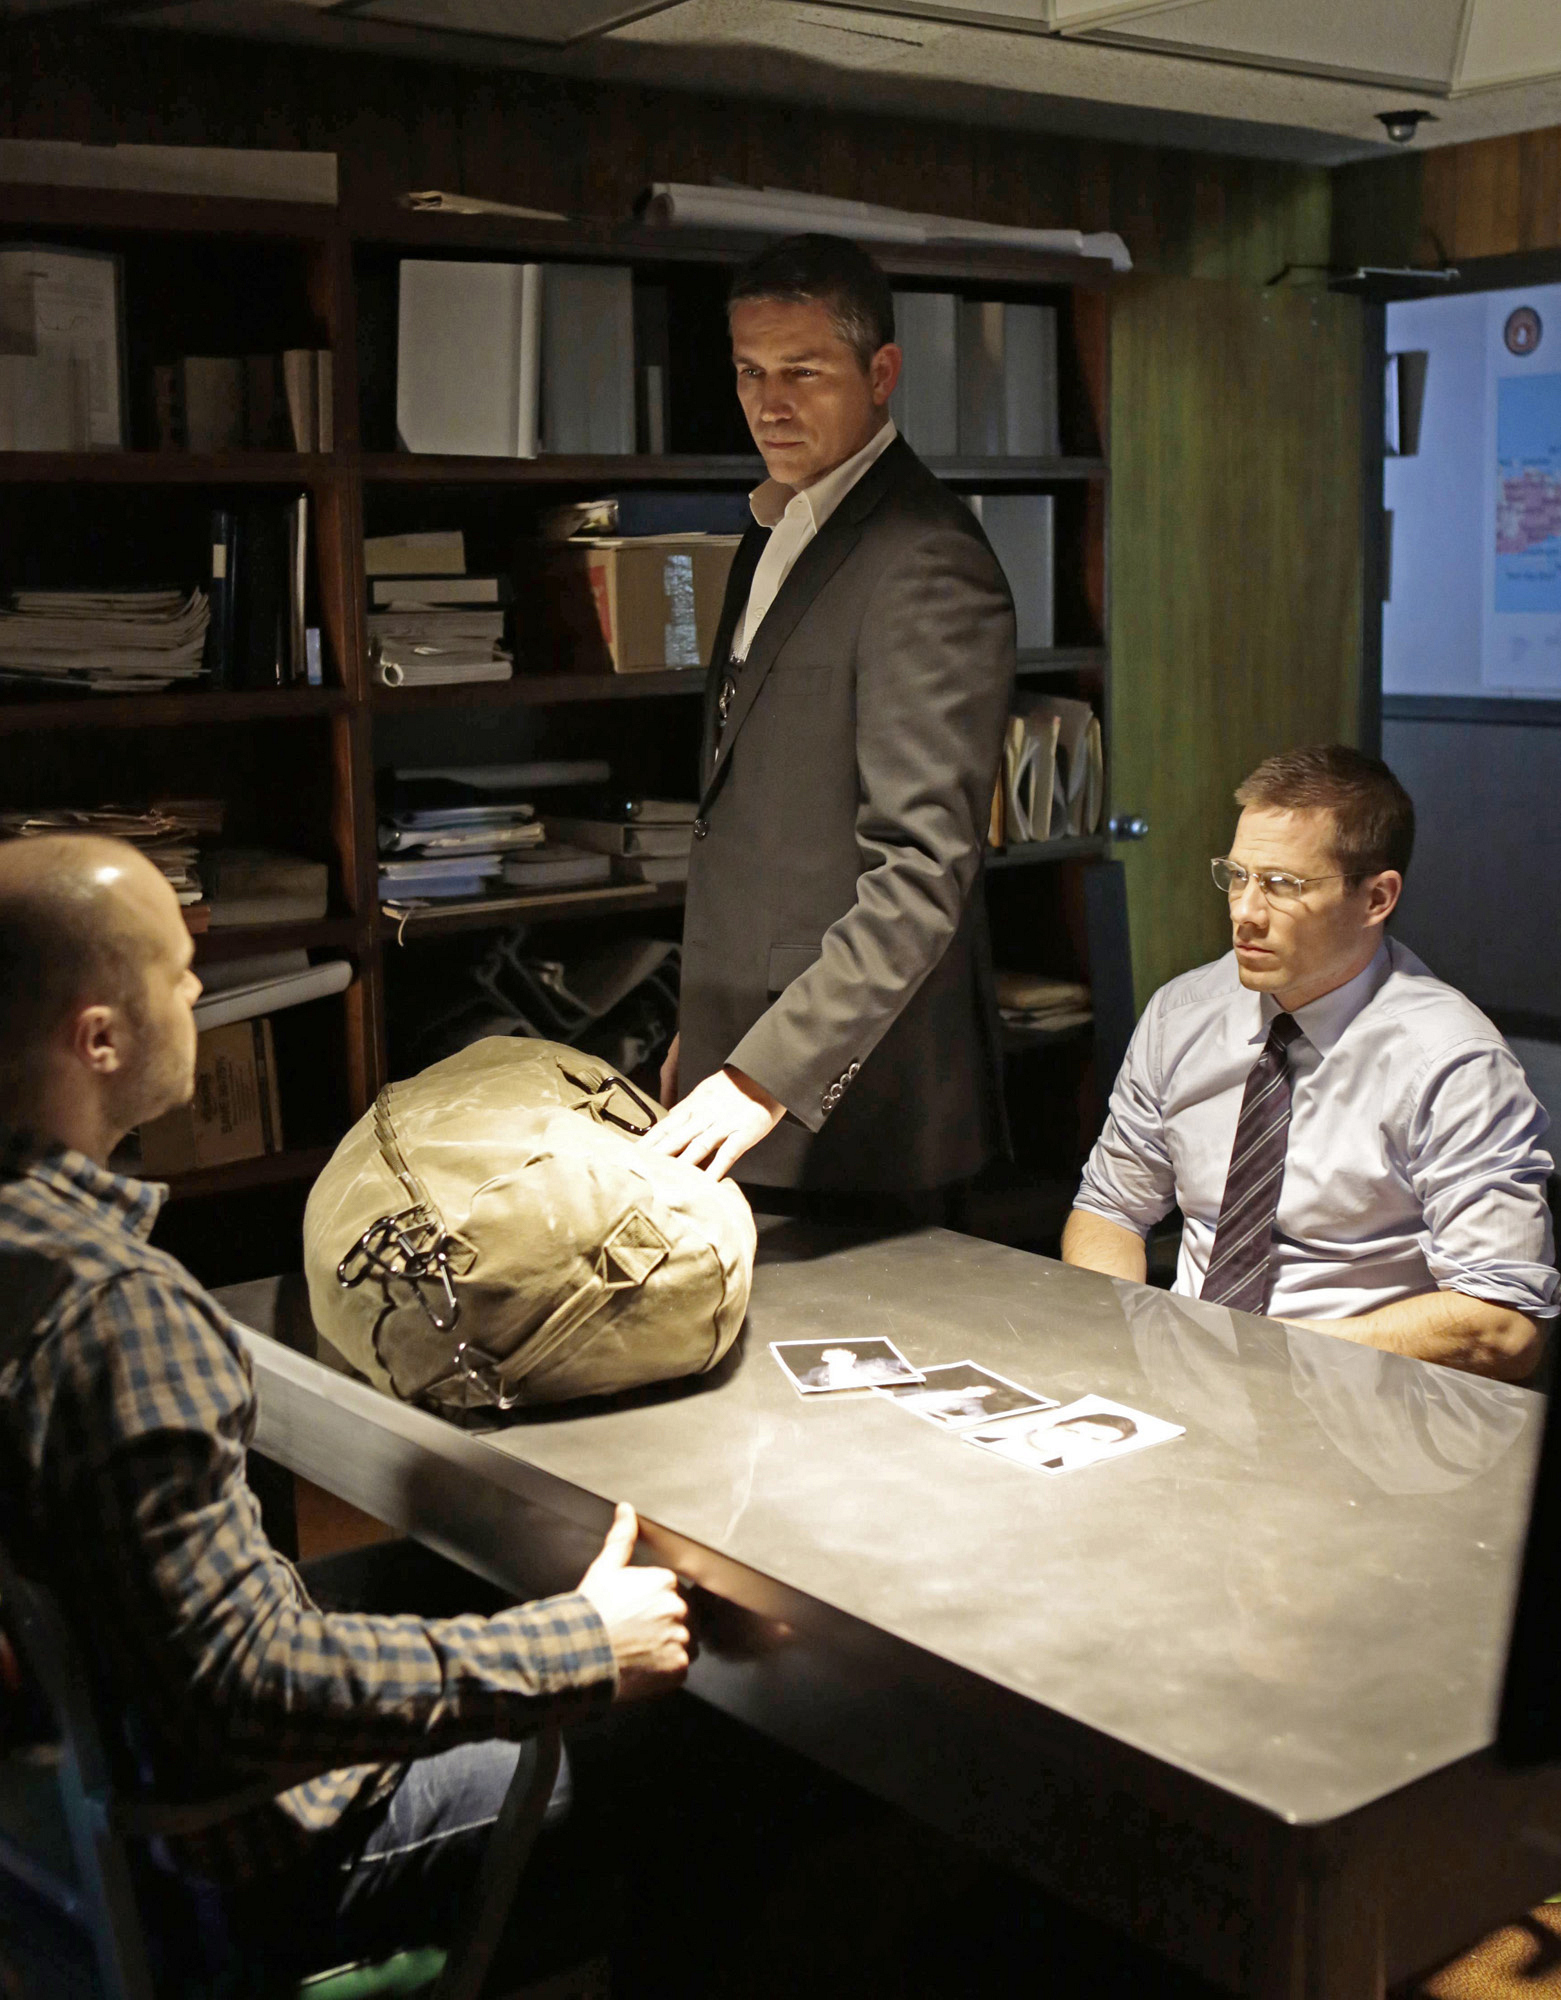 Reese joins forces with an FBI Agent